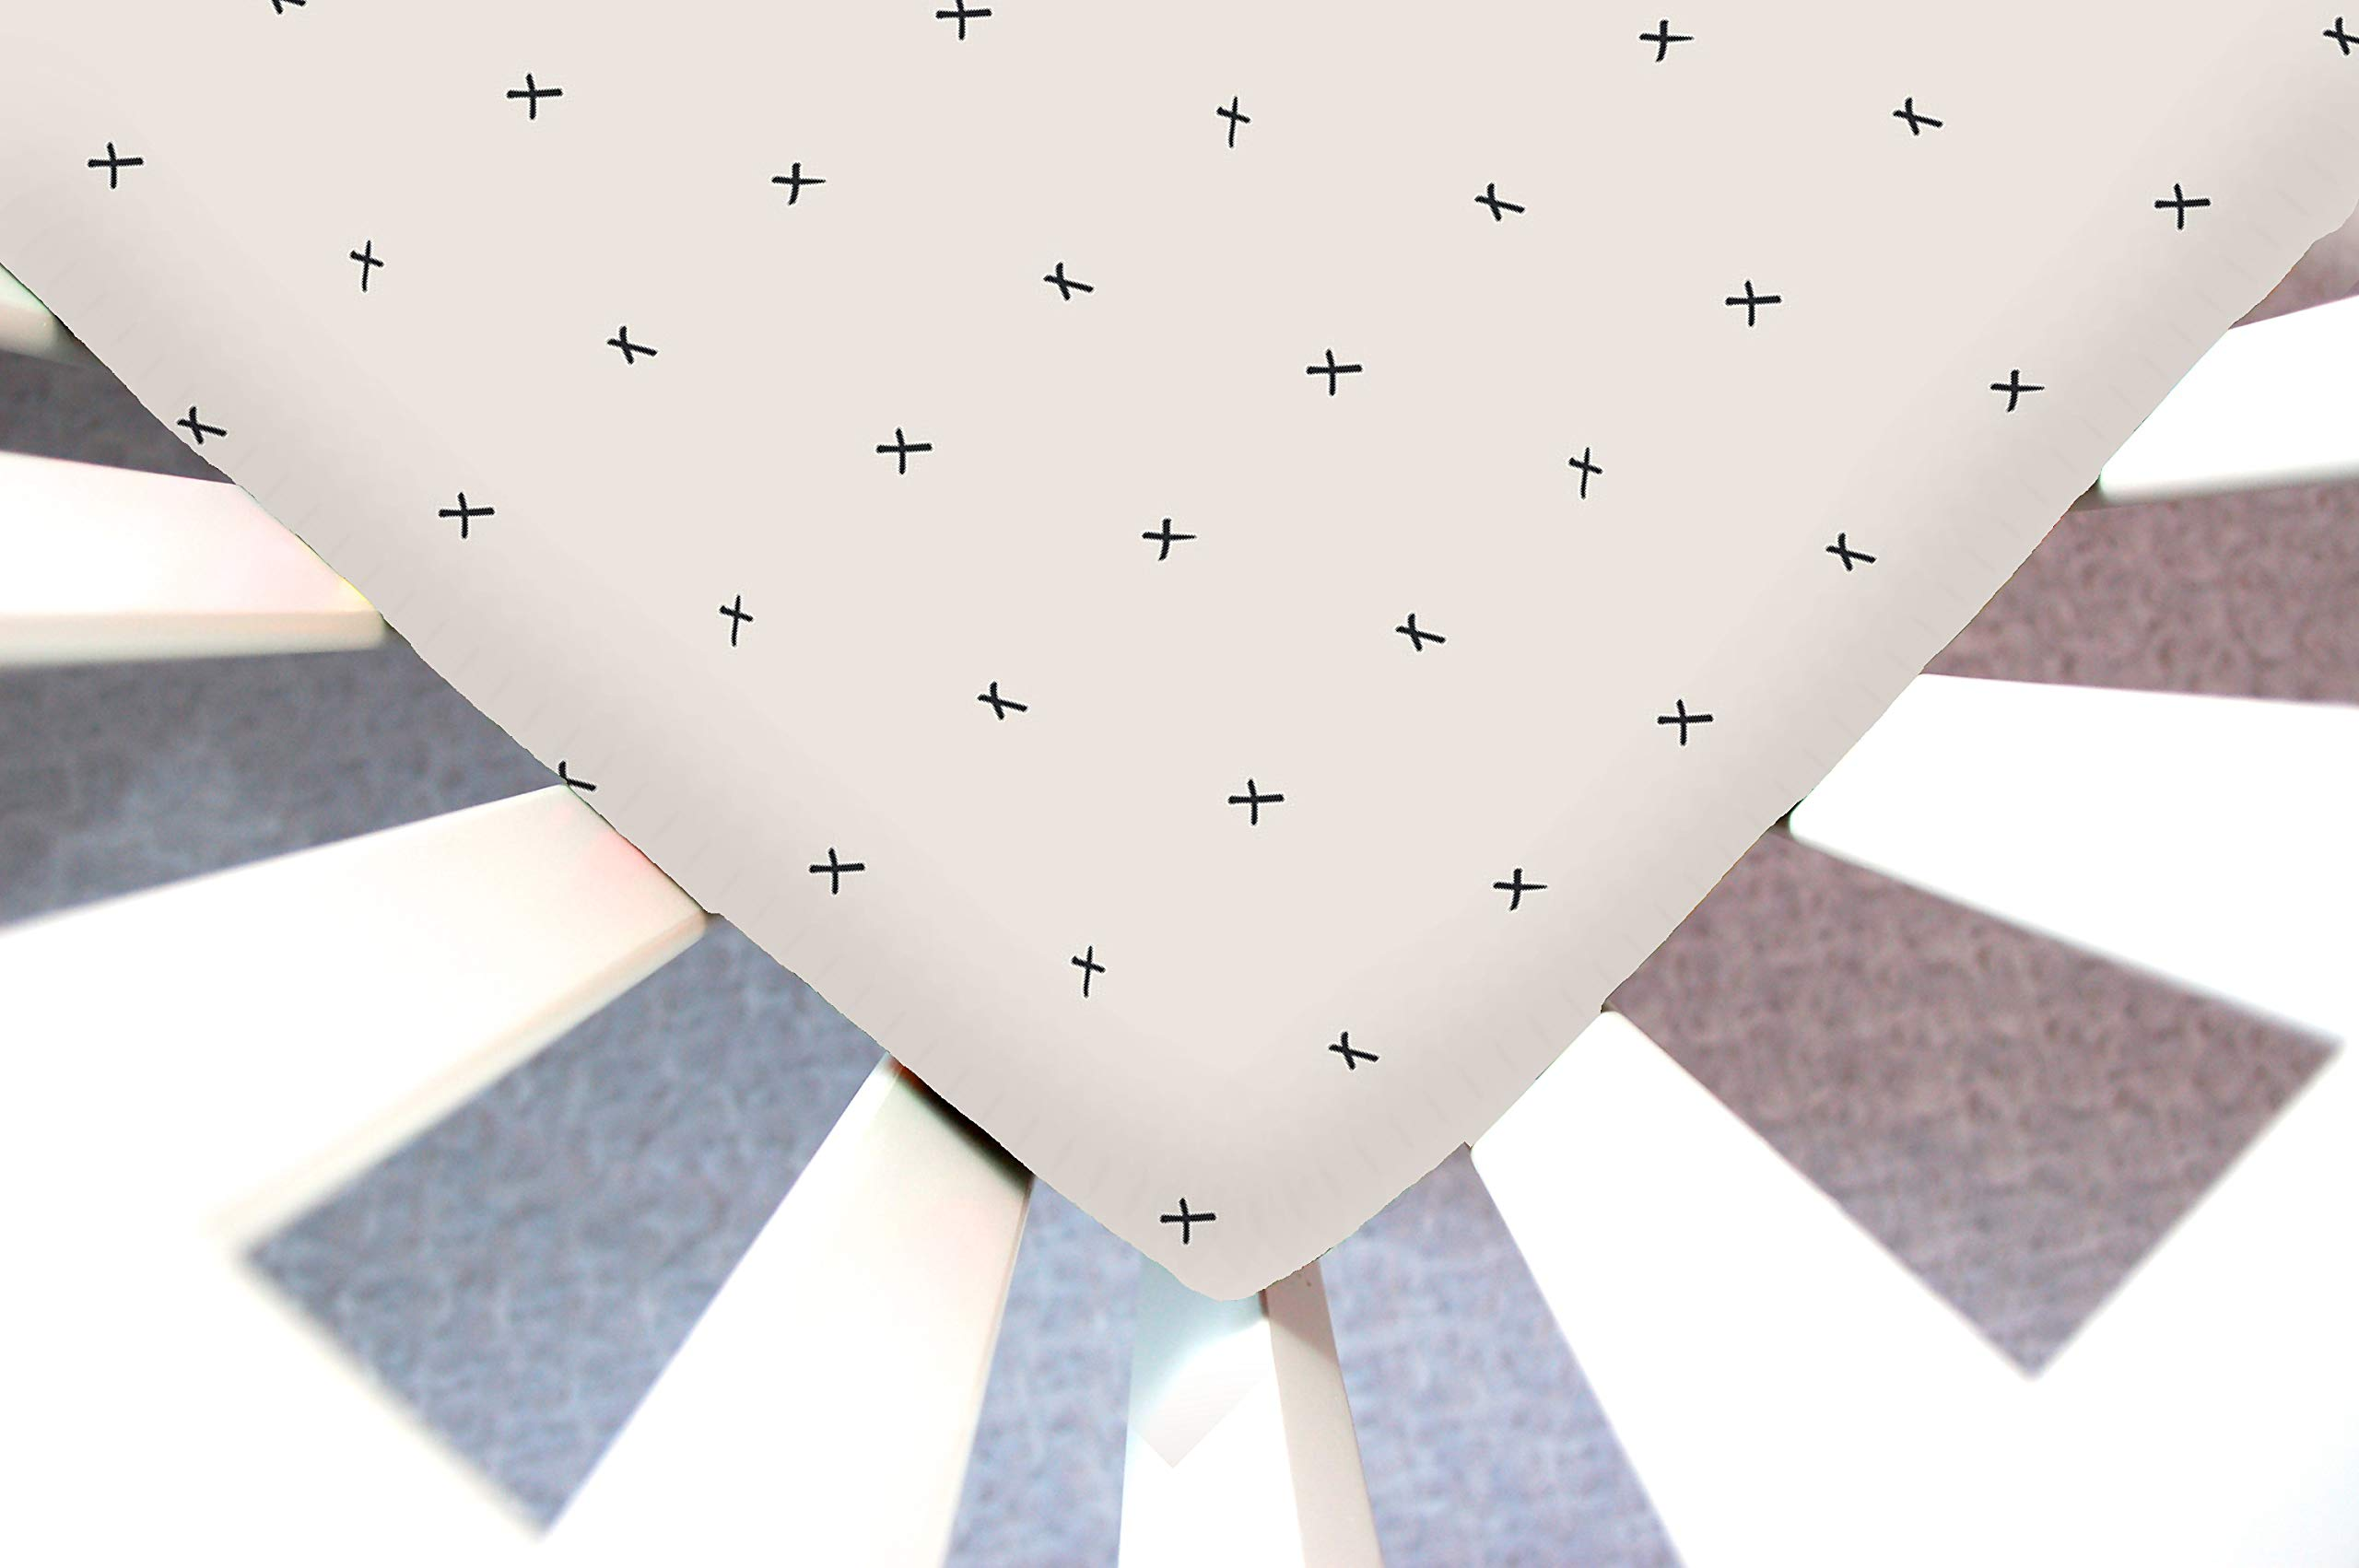 Little Moose by Liza Handmade Sheet Made to Fit 4Moms Bassinet Classic, Plus, or Go in Marked Sights (Cream Black Cross). This Sheet was Not Created or Sold by 4Moms by Little Moose By Liza LLC